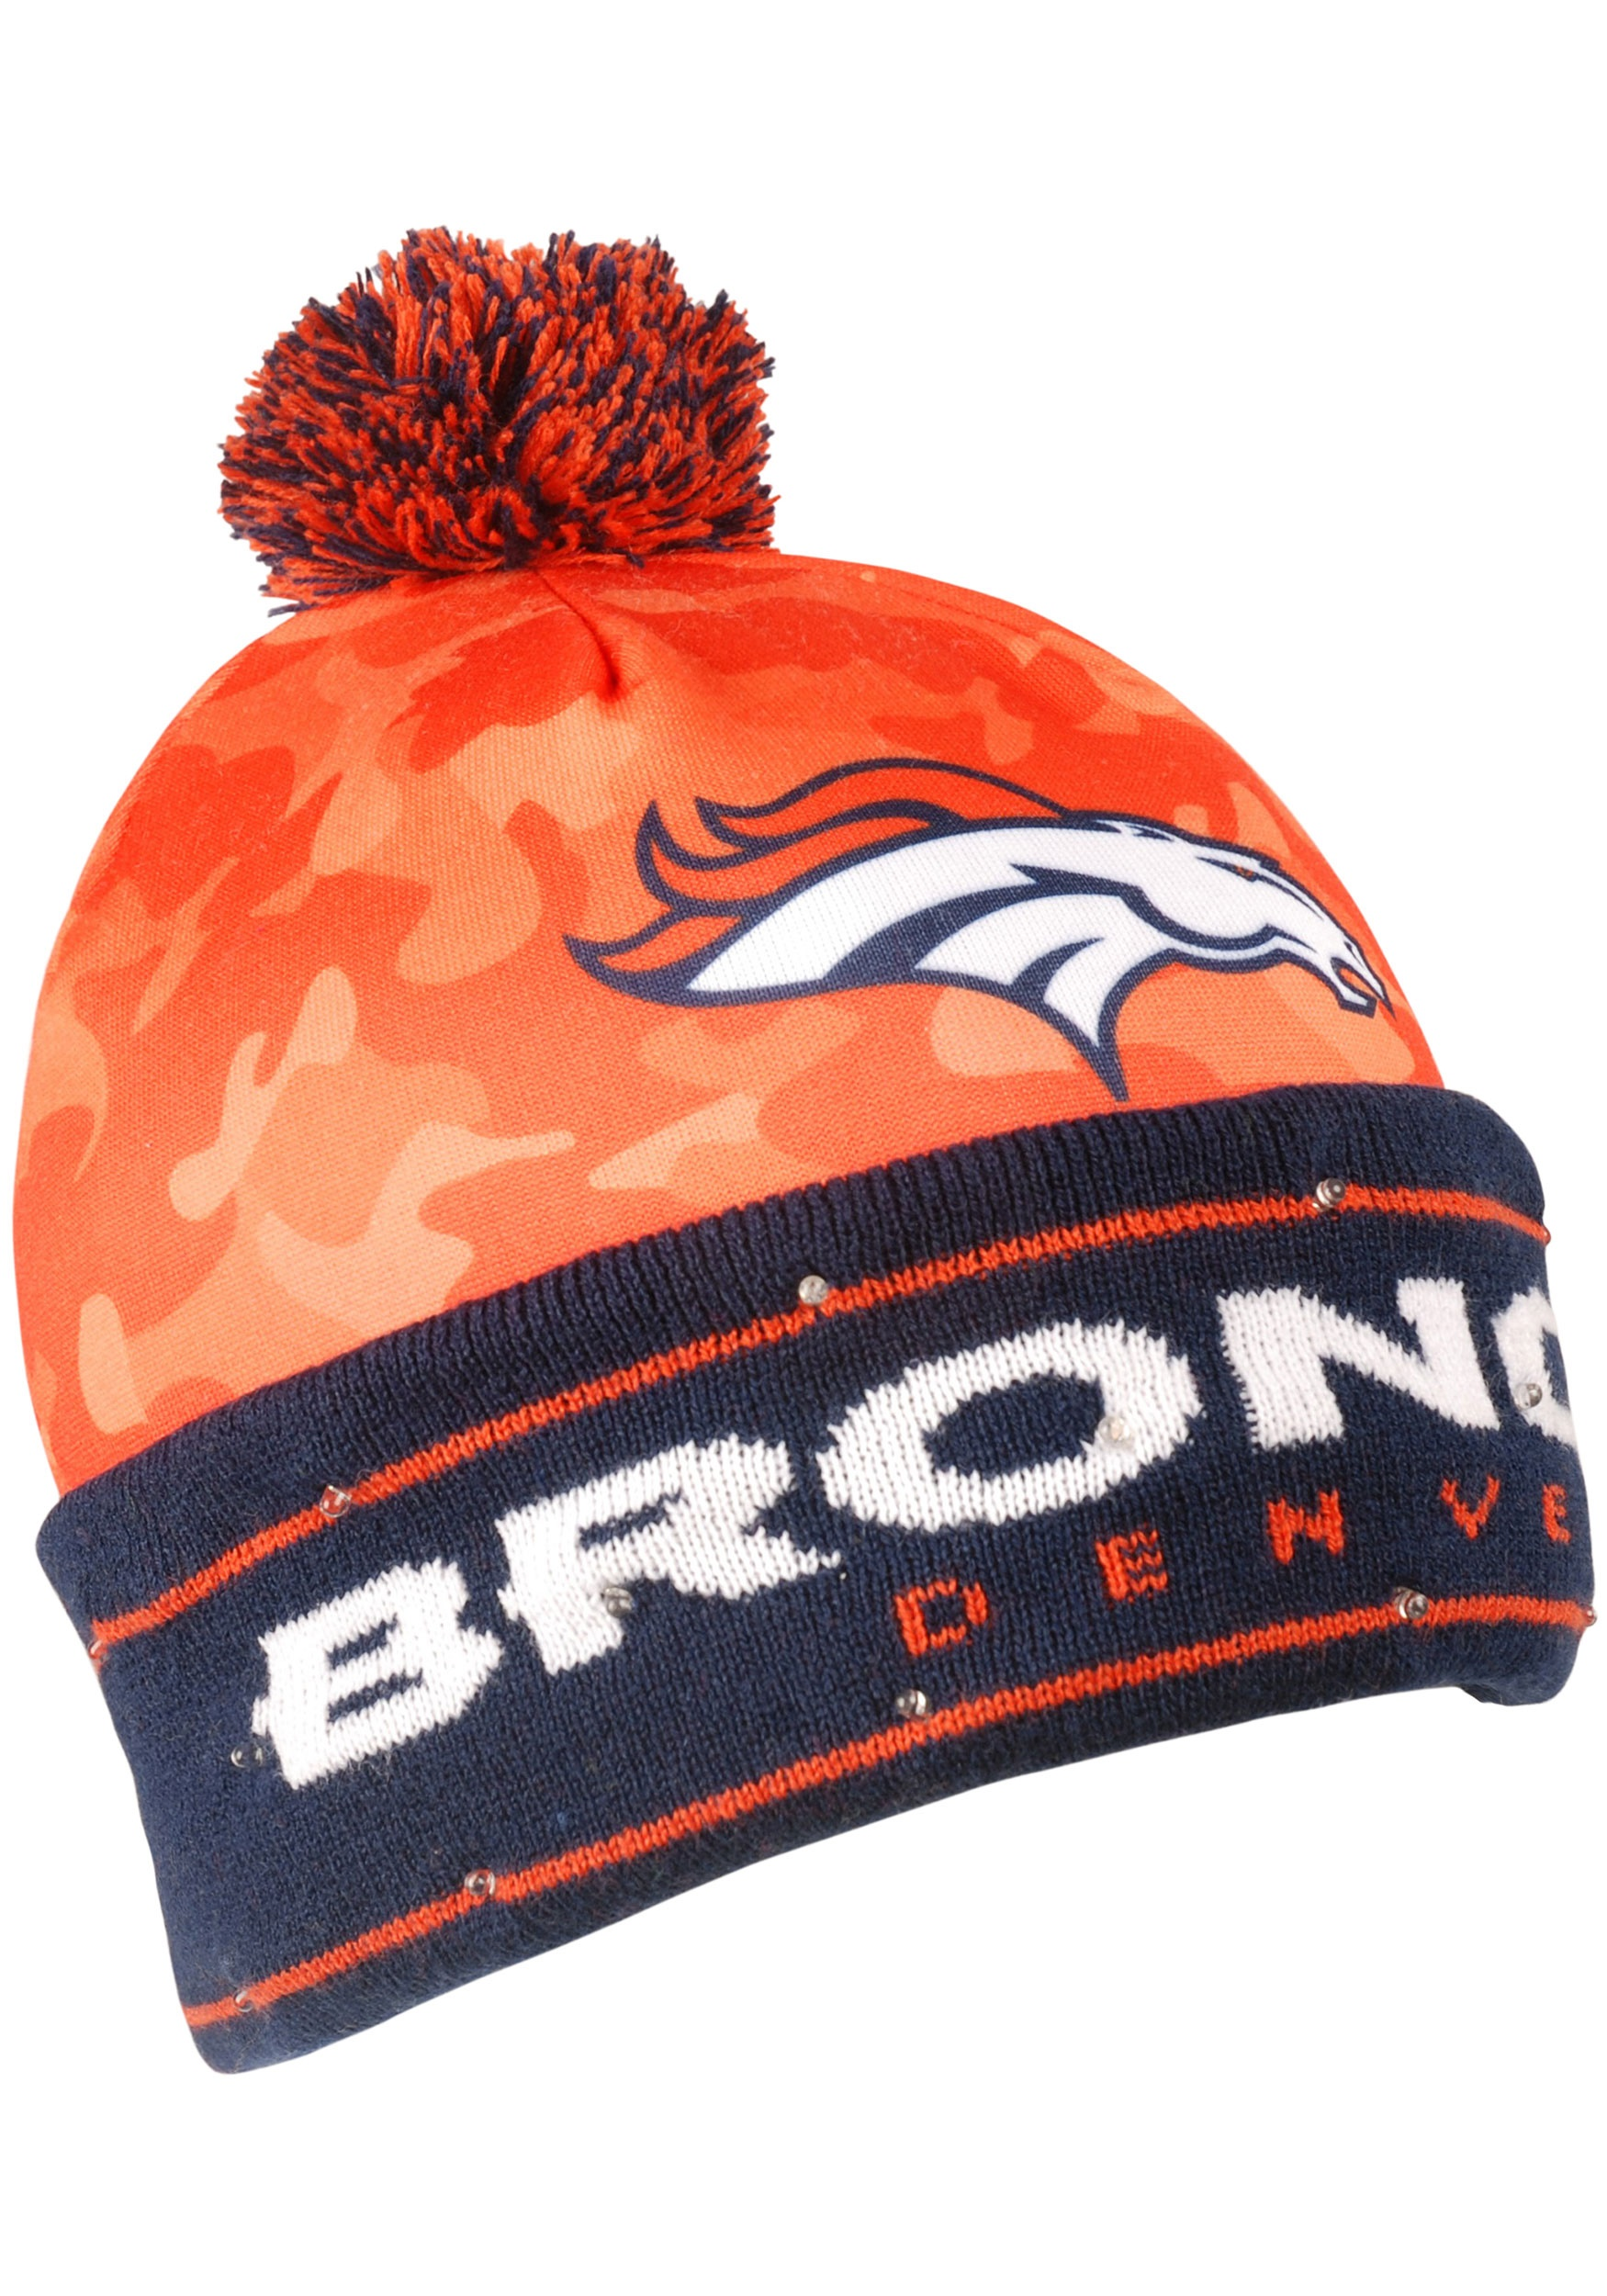 5a0ece970b87e NFL Denver Broncos Camouflage Light Up Stocking Hat